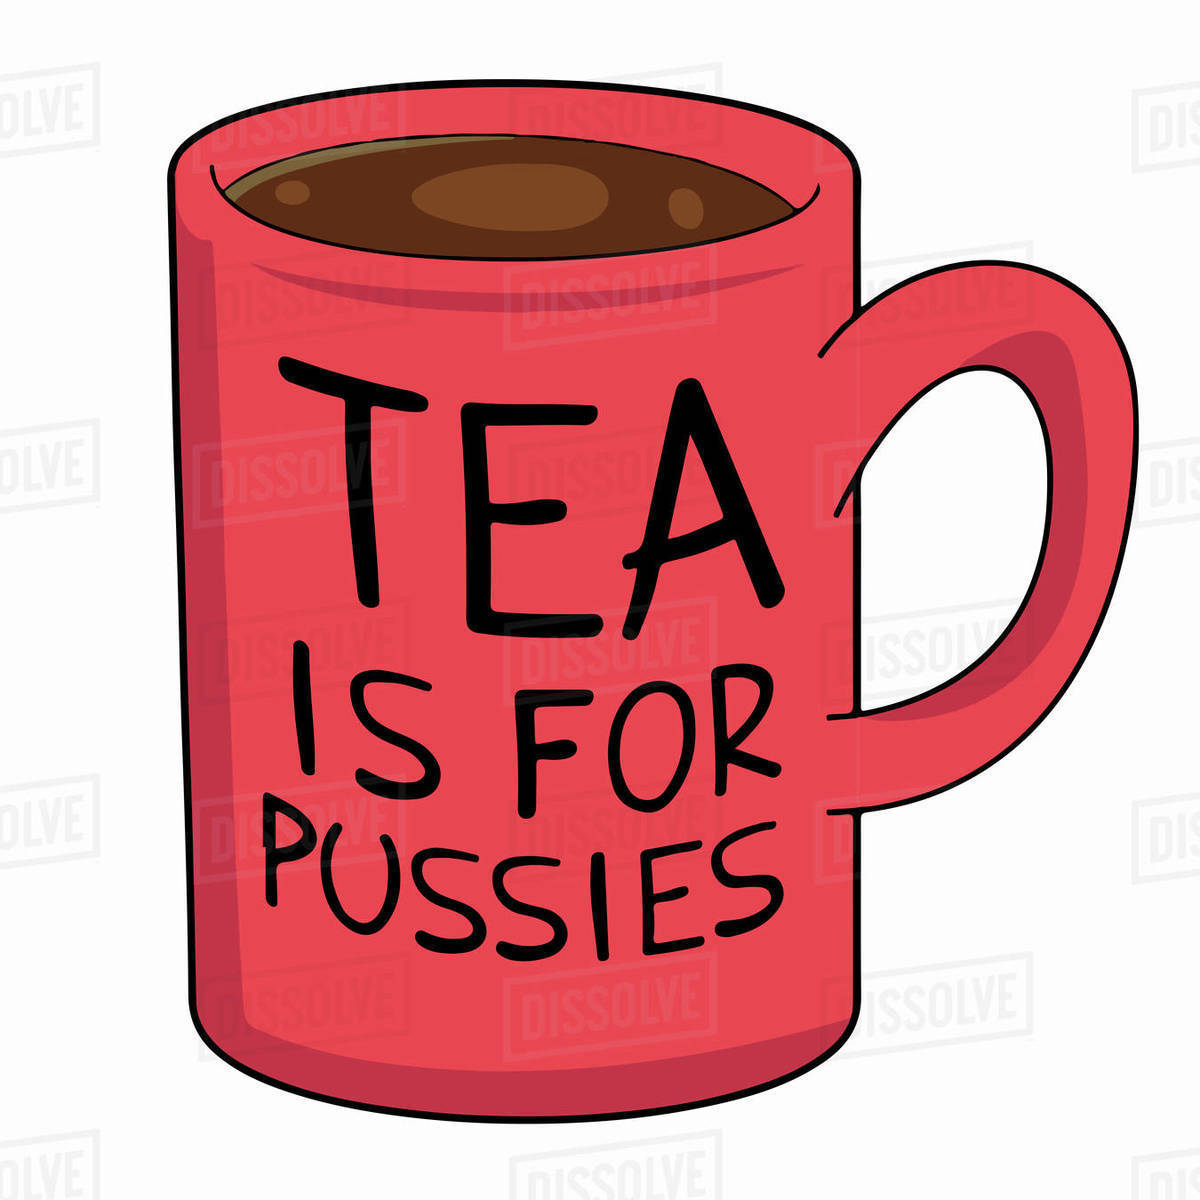 Illustration of tea mug with slogan against white background Royalty-free stock photo